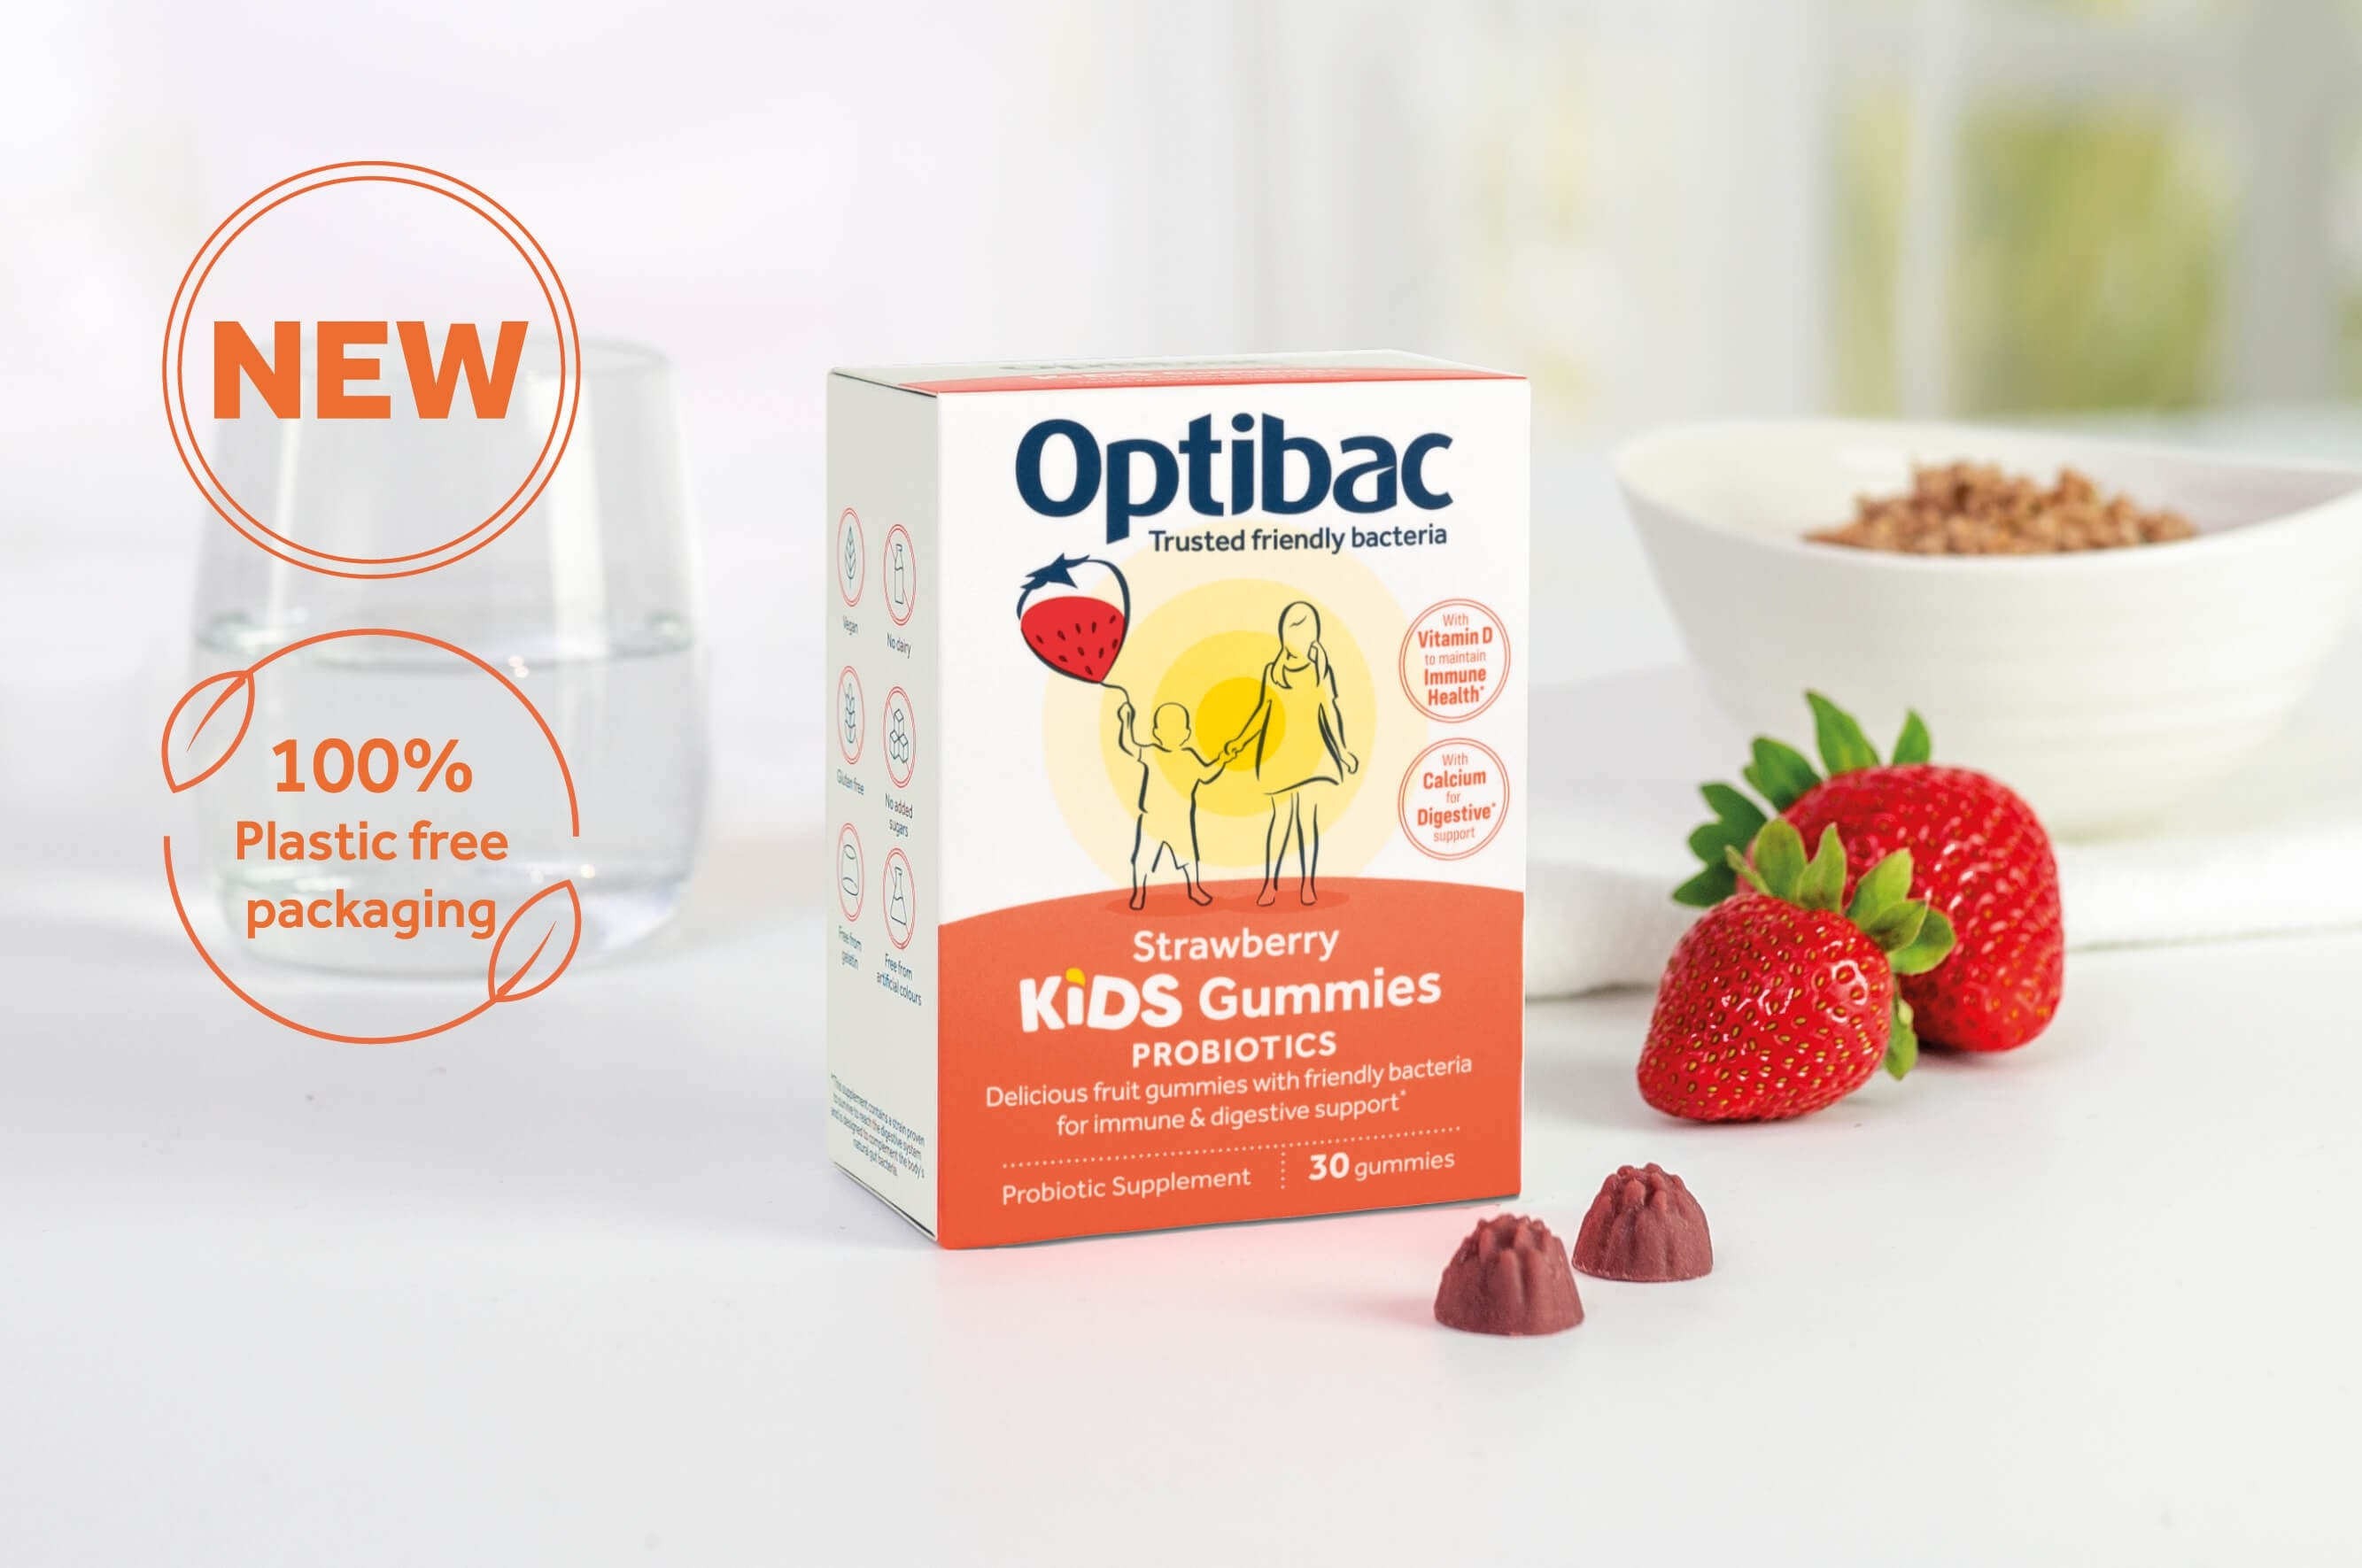 Optibac Probiotics Kids Gummies